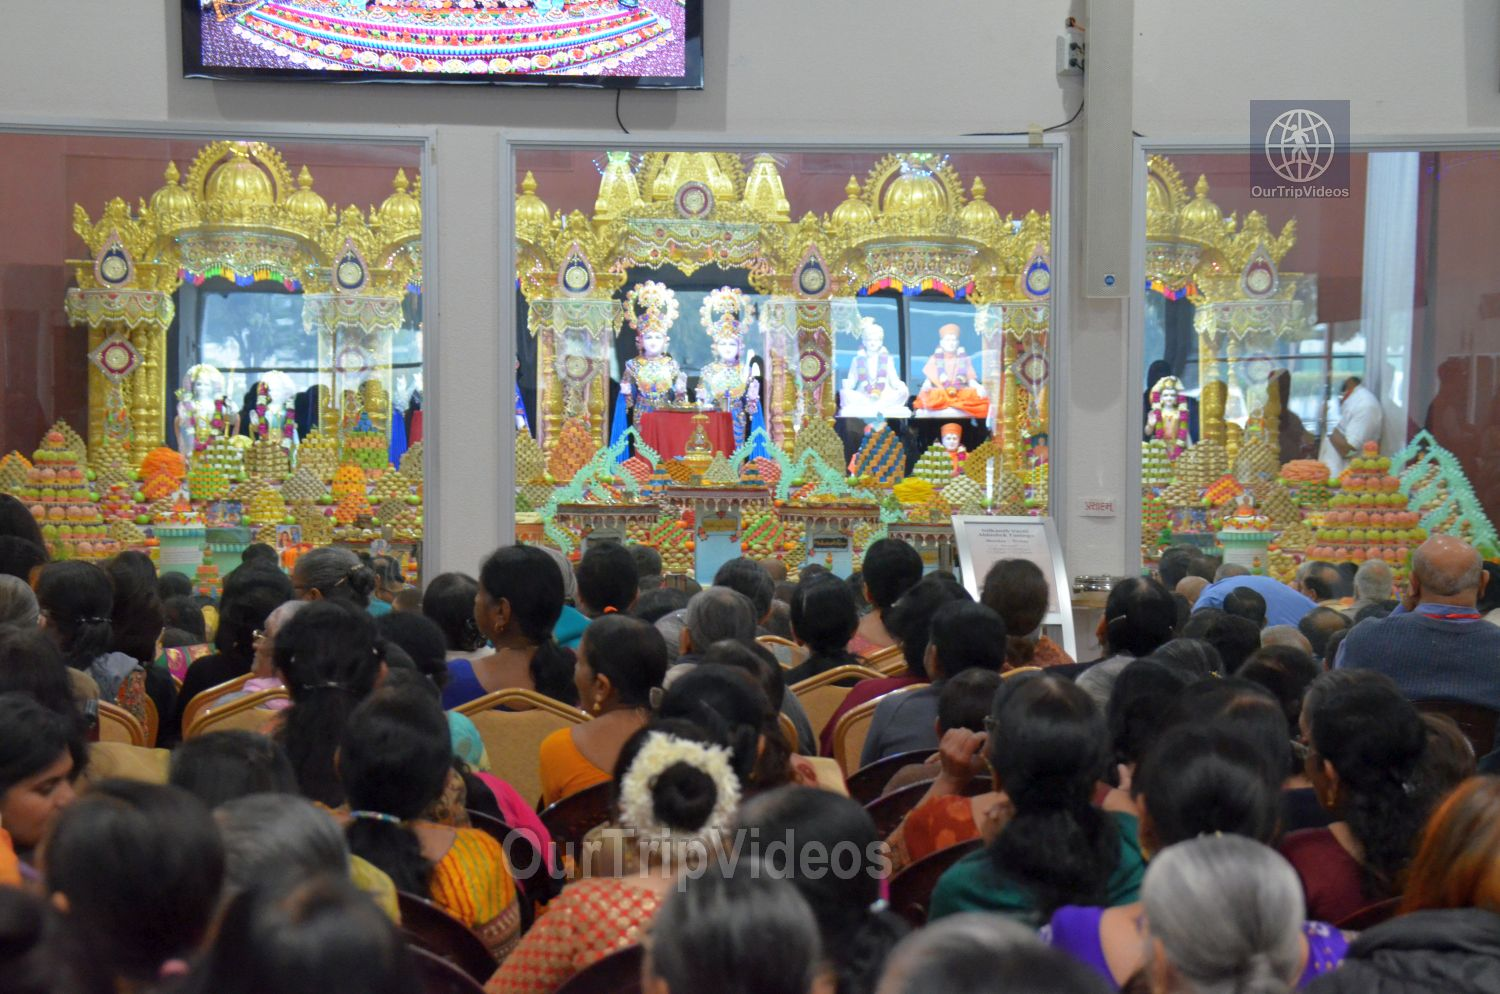 Diwali Celebrations at BAPS Swaminarayan Temple, Milpitas, CA, USA - Picture 9 of 25